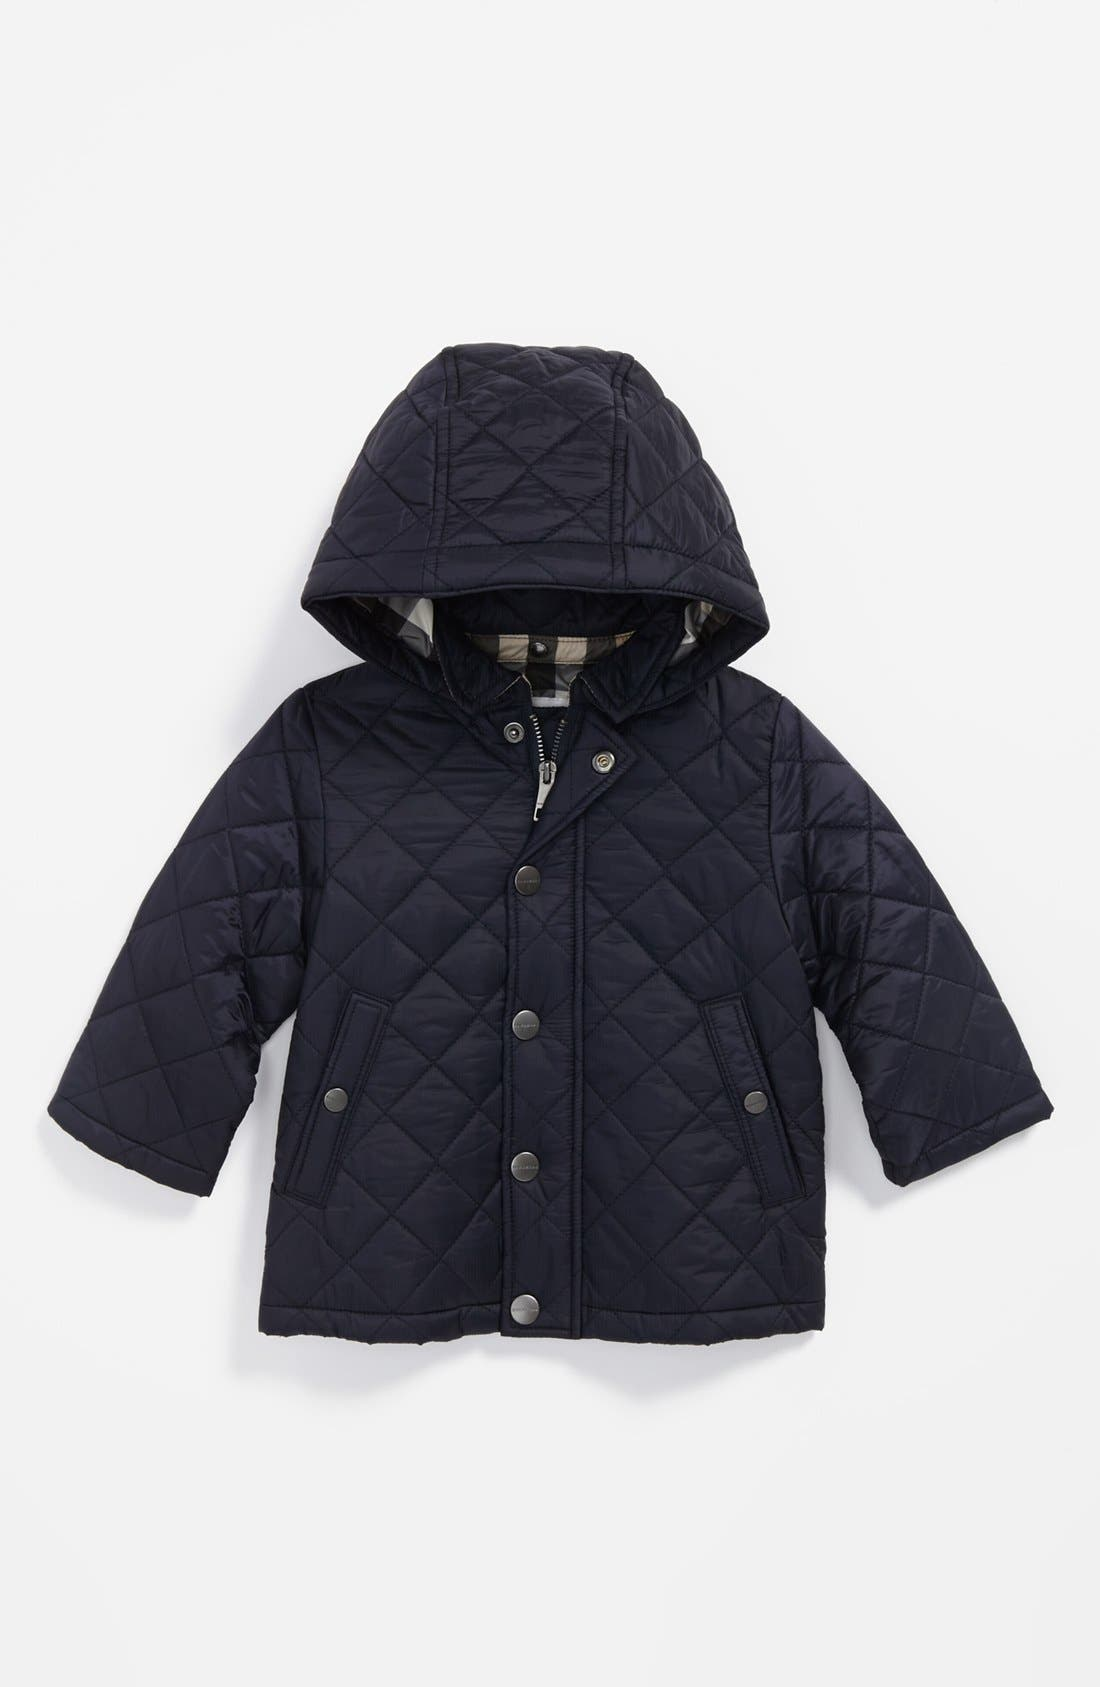 Alternate Image 1 Selected - Burberry 'Jerry' Quilted Jacket (Baby Boys)